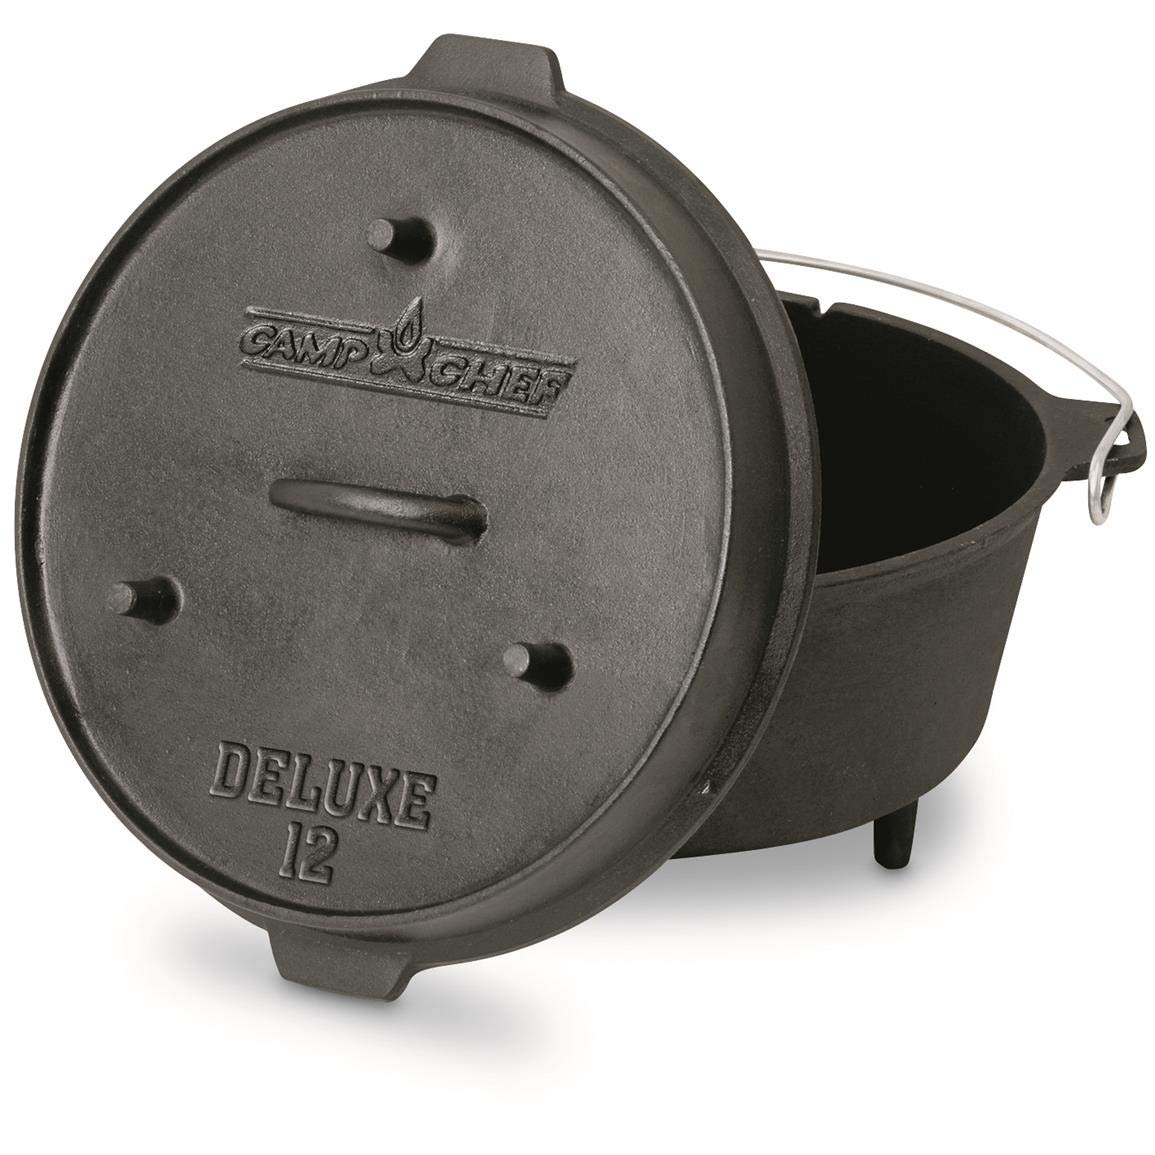 Camp Chef Deluxe 9 1/3-Quart Dutch Oven